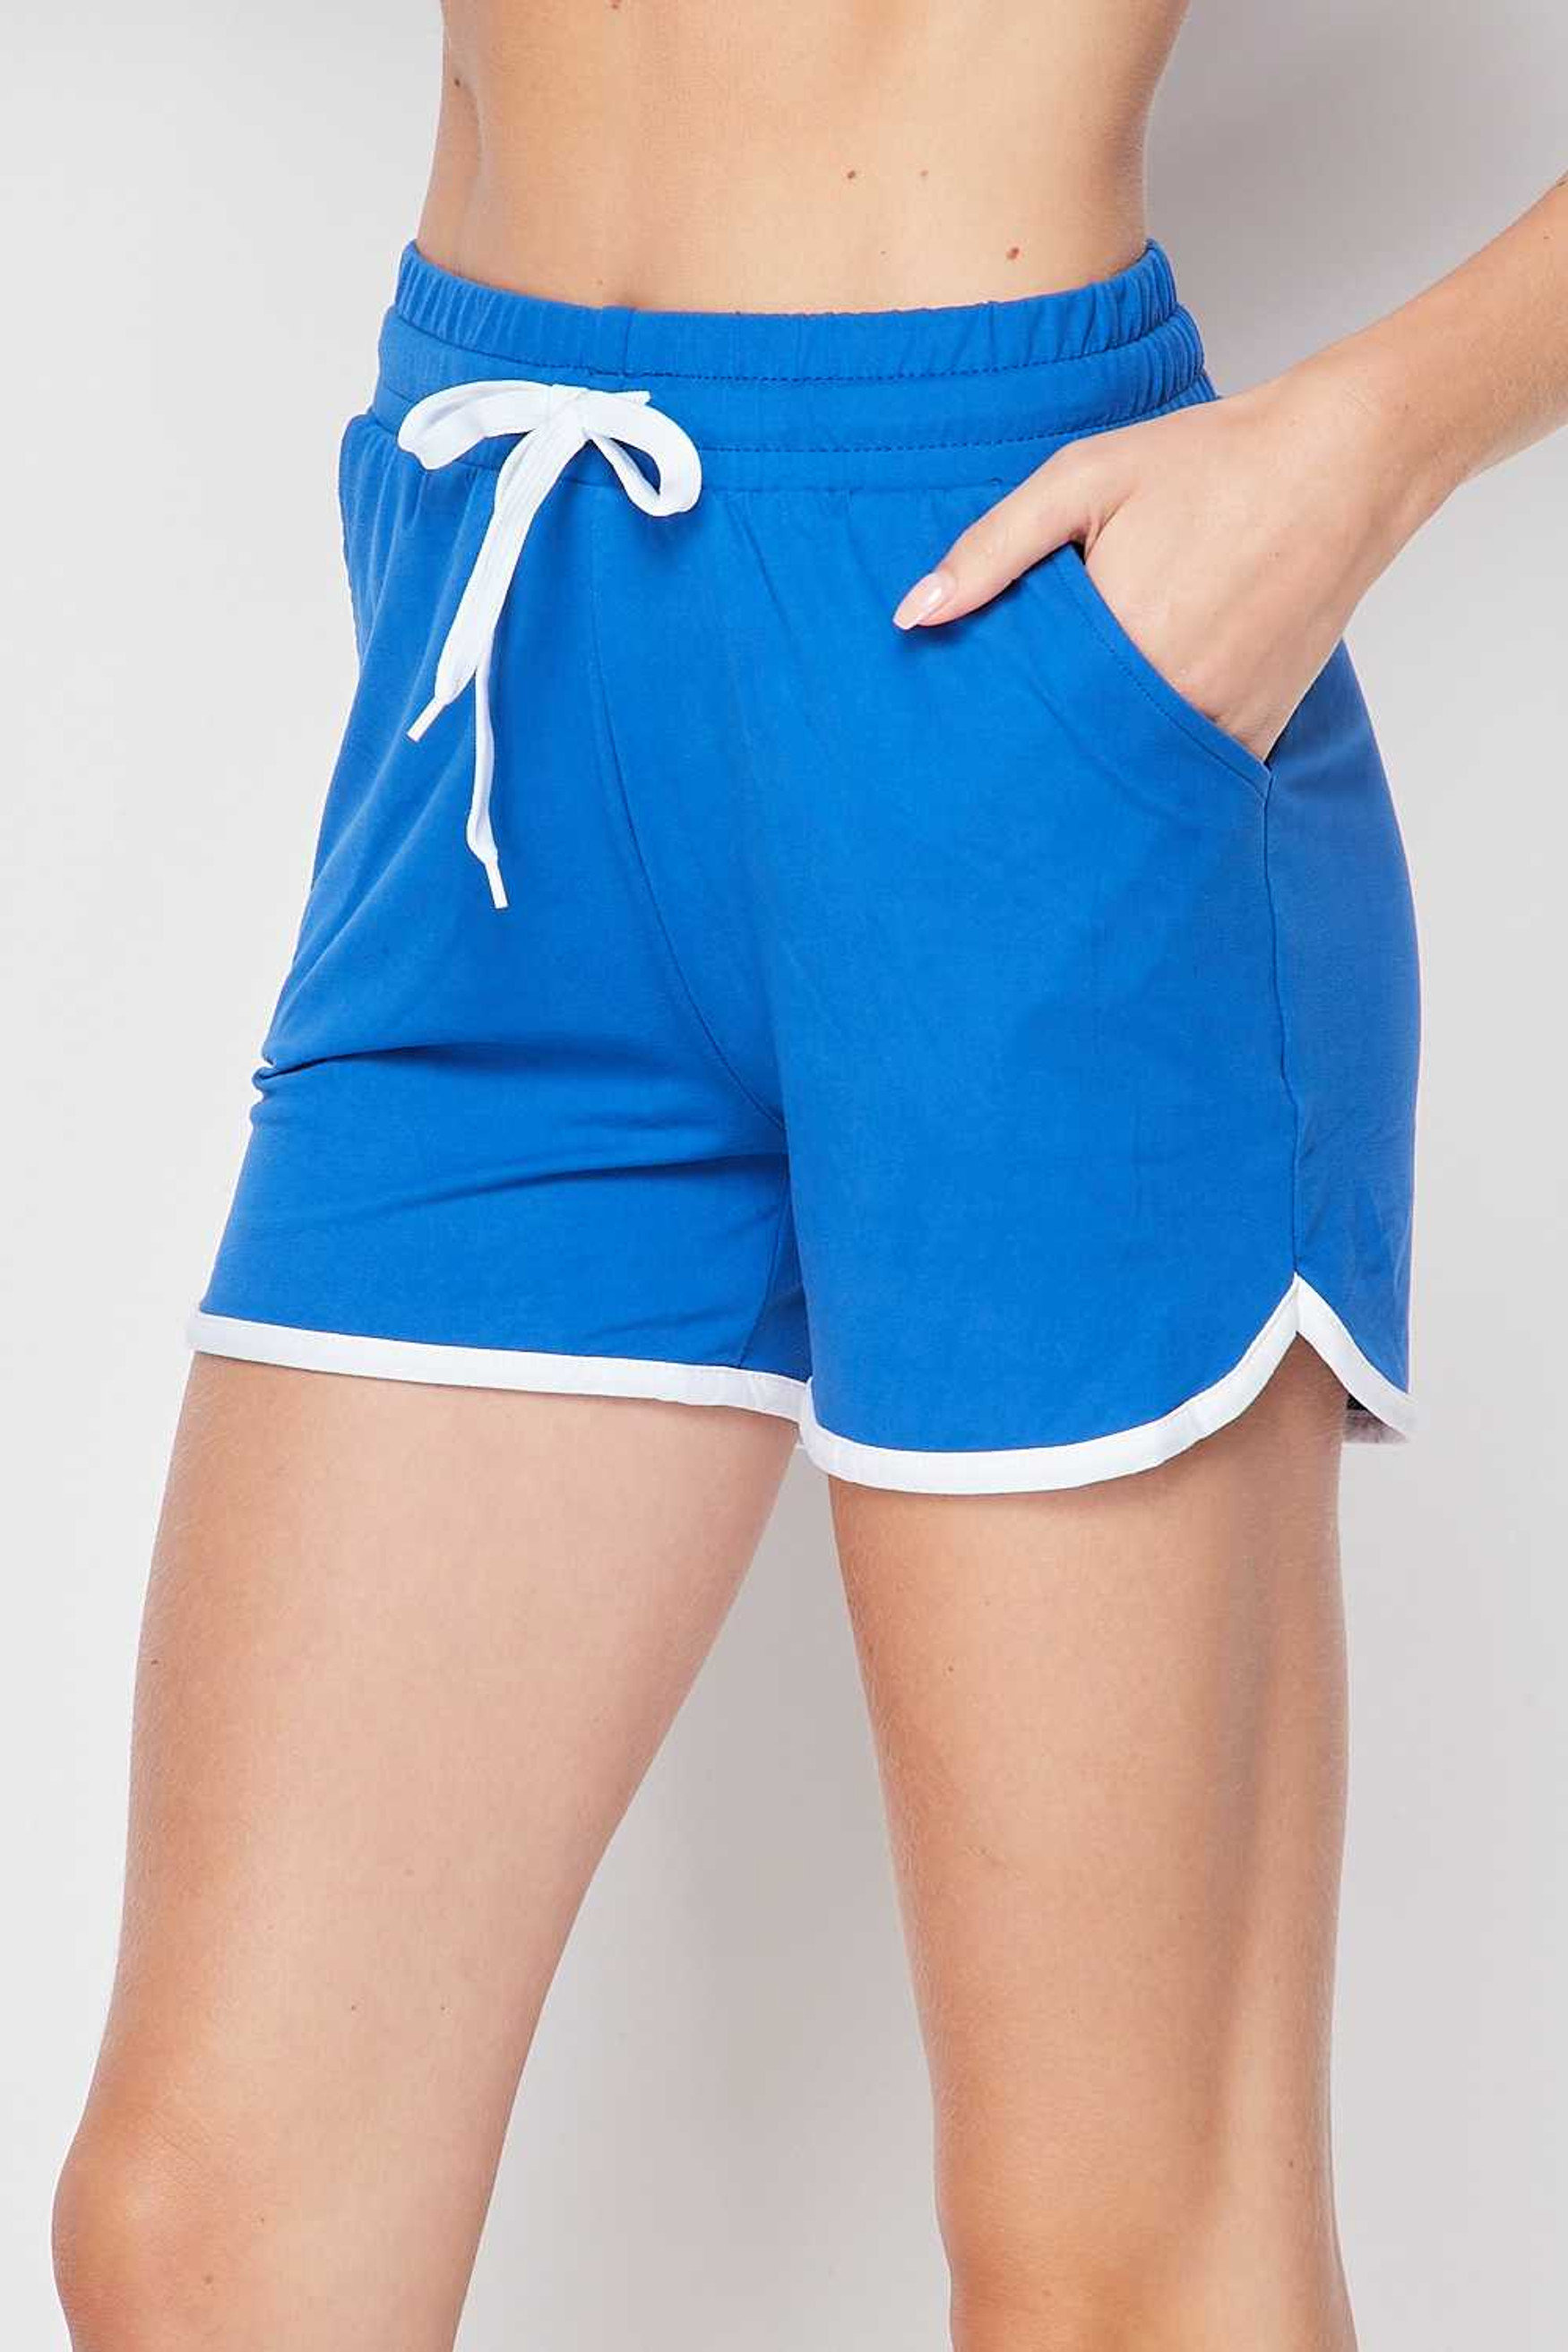 Left side of Royal Blue Buttery Soft Drawstring Waist Plus Size Dolphin Shorts with Pockets